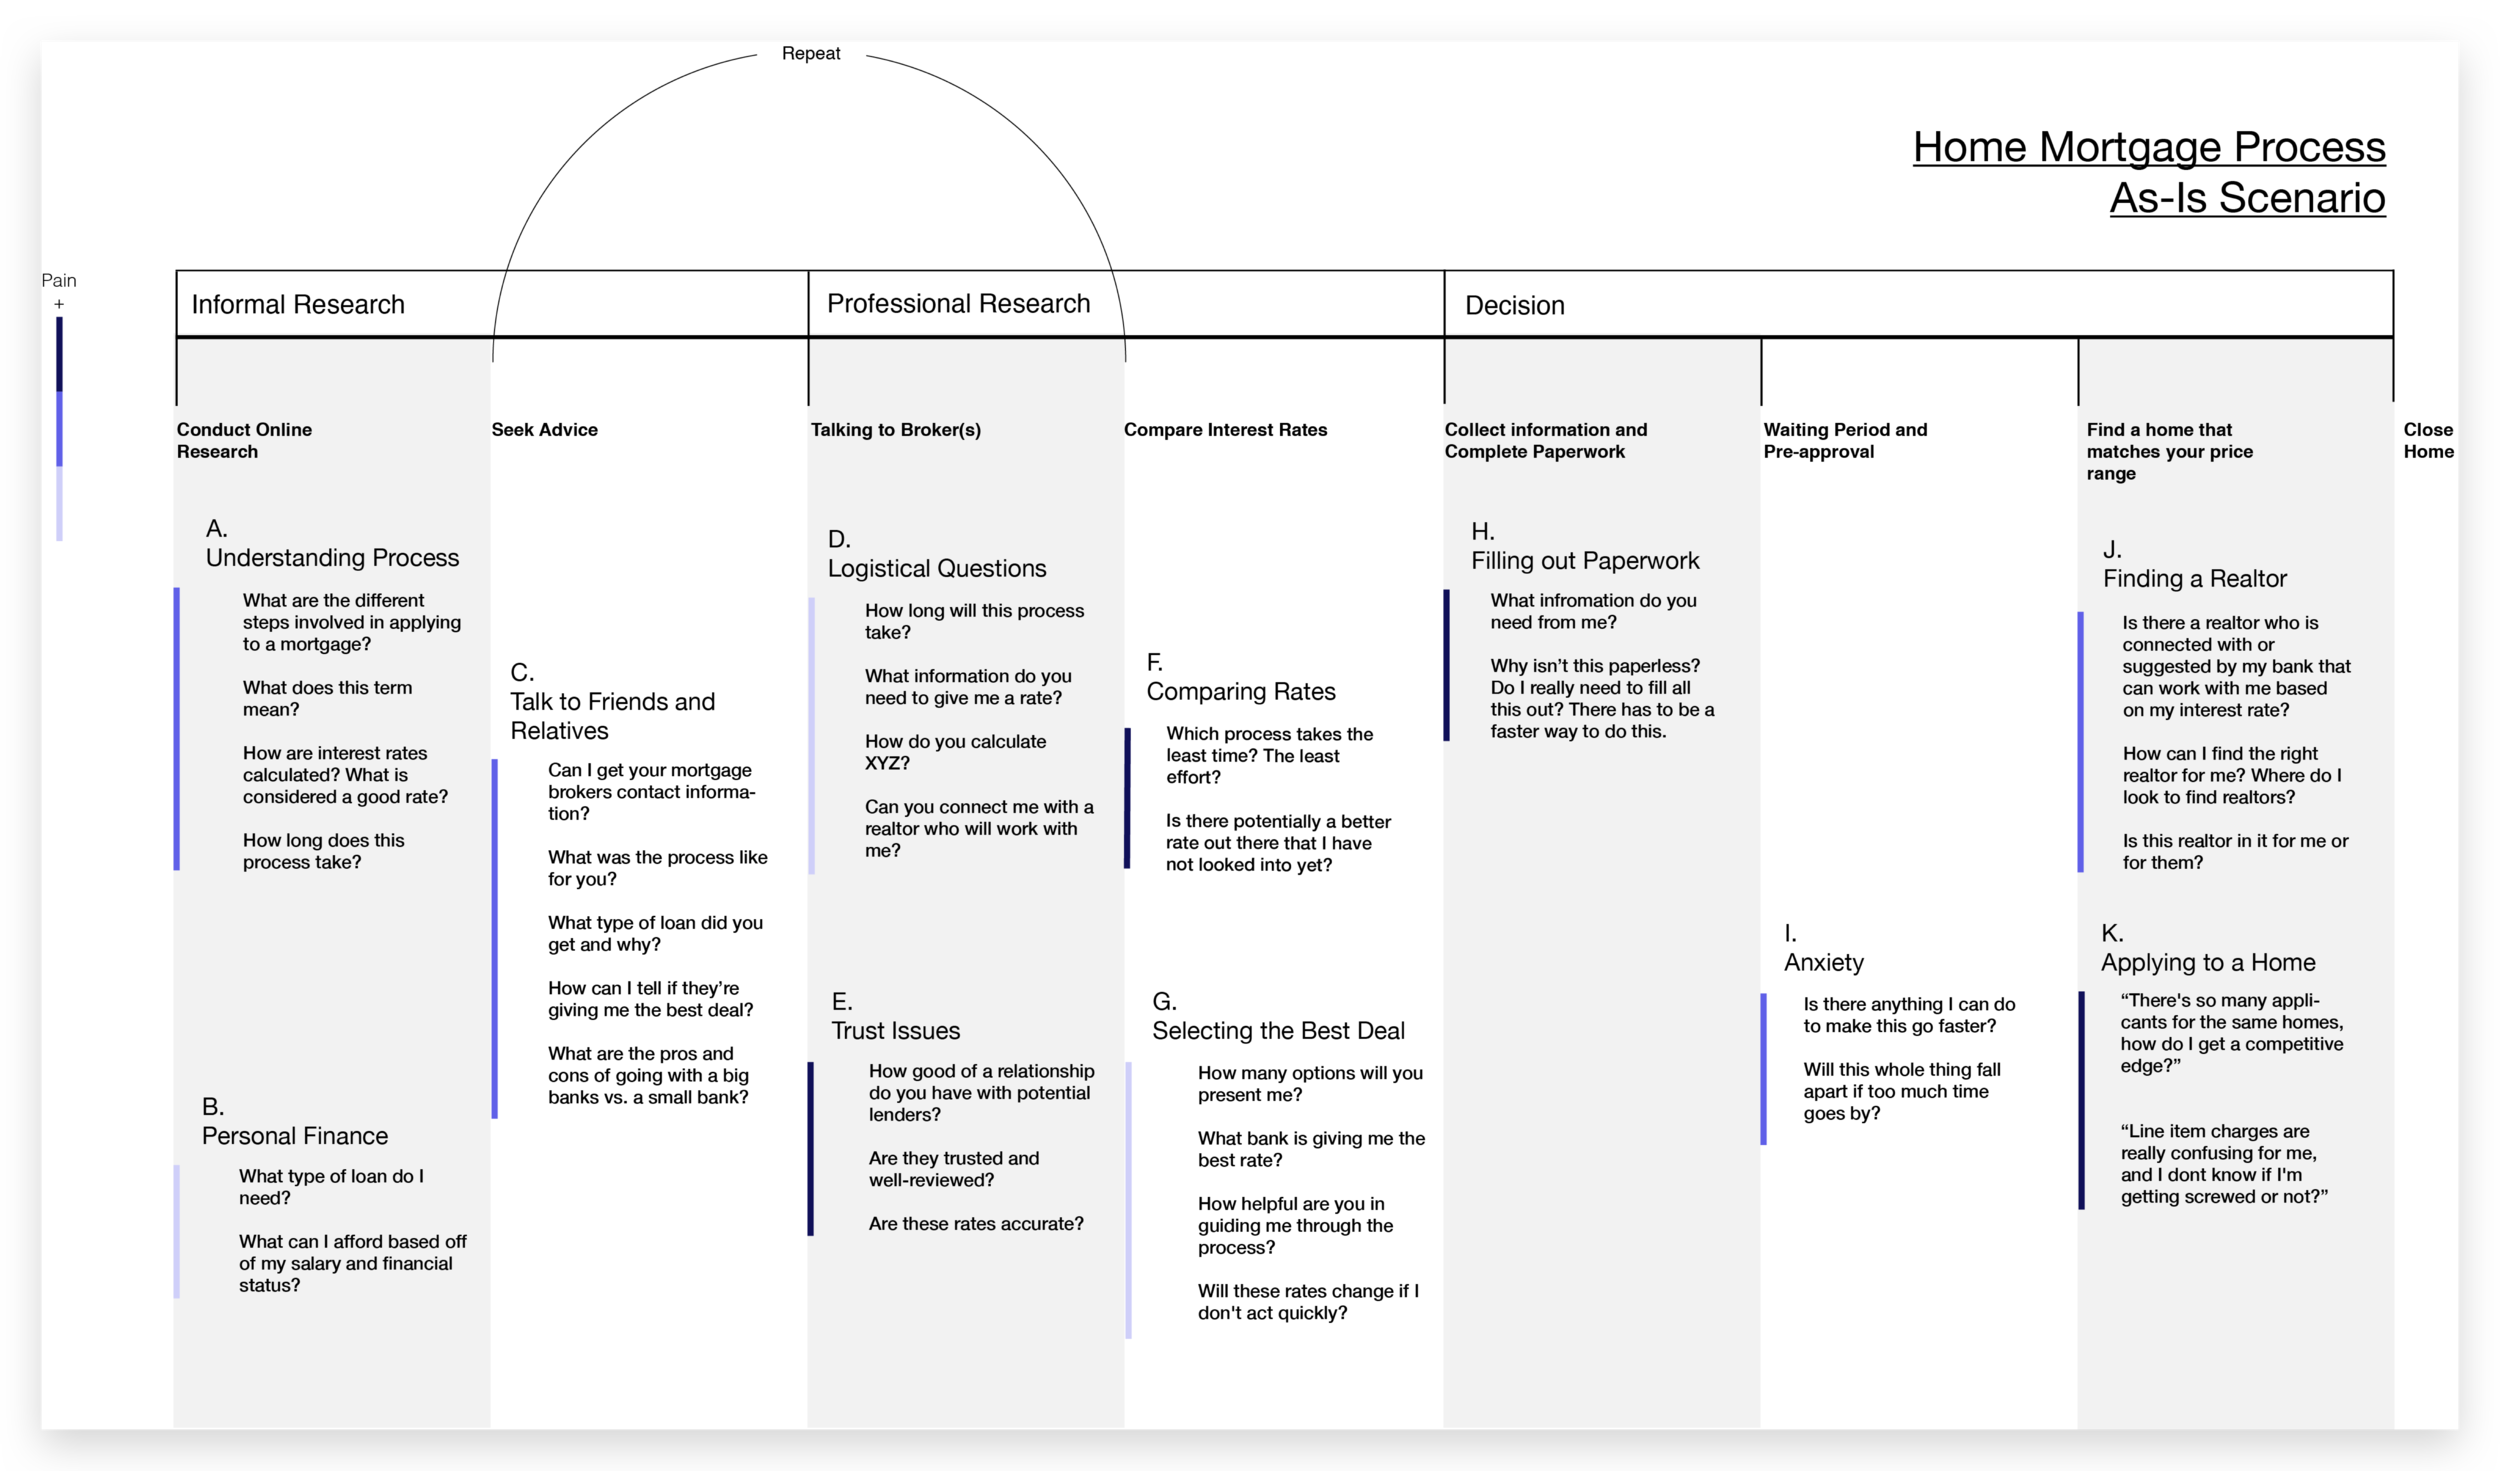 """General journey map that outlines mortgage research process across 3 types of users. Indicates levels of """"pain"""" (i.e. frustration), too."""